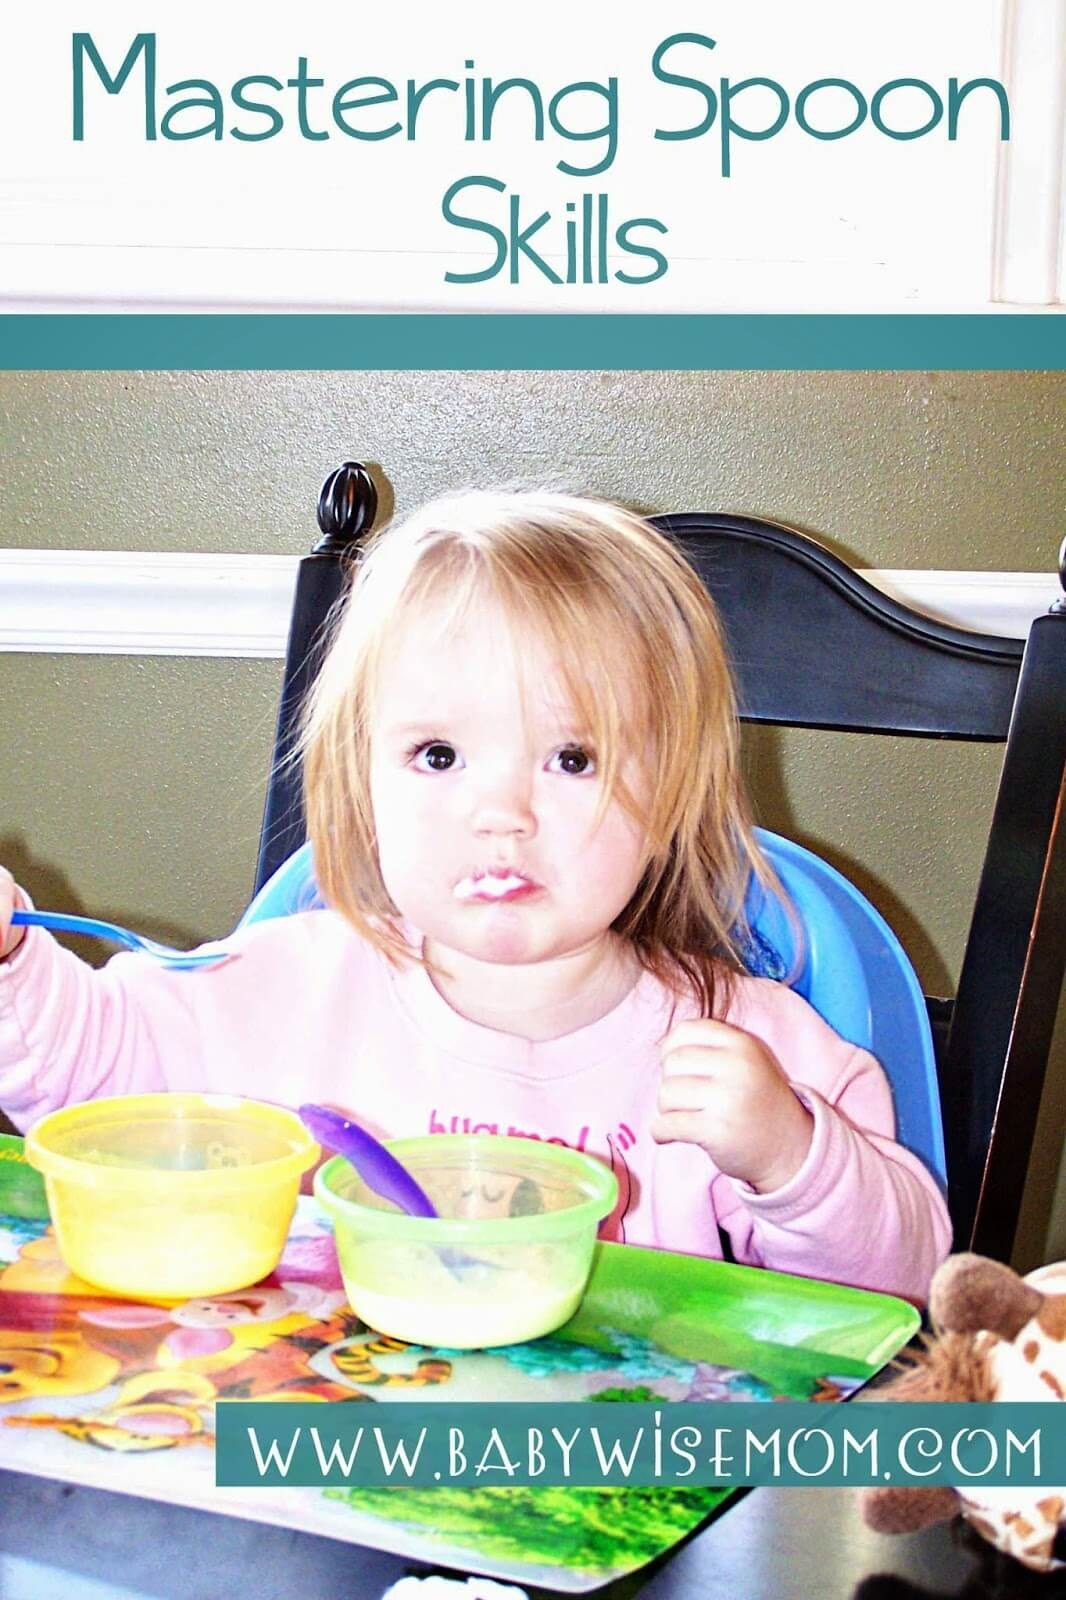 When Does a Toddler Master Spoon Skills. When to expect at toddler to be able to eat well from a spoon.When Does a Toddler Master Spoon Skills. When to expect at toddler to be able to eat well from a spoon.When Does a Toddler Master Spoon Skills. When to expect at toddler to be able to eat well from a spoon.When Does a Toddler Master Spoon Skills. When to expect at toddler to be able to eat well from a spoon.When Does a Toddler Master Spoon Skills. When to expect at toddler to be able to eat well from a spoon.When Does a Toddler Master Spoon Skills. When to expect at toddler to be able to eat well from a spoon.When Does a Toddler Master Spoon Skills. When to expect at toddler to be able to eat well from a spoon.When Does a Toddler Master Spoon Skills. When to expect at toddler to be able to eat well from a spoon.When Does a Toddler Master Spoon Skills. When to expect at toddler to be able to eat well from a spoon.When Does a Toddler Master Spoon Skills. When to expect at toddler to be able to eat well from a spoon.When Does a Toddler Master Spoon Skills. When to expect at toddler to be able to eat well from a spoon.When Does a Toddler Master Spoon Skills. When to expect at toddler to be able to eat well from a spoon.When Does a Toddler Master Spoon Skills. When to expect at toddler to be able to eat well from a spoon.When Does a Toddler Master Spoon Skills. When to expect at toddler to be able to eat well from a spoon.When Does a Toddler Master Spoon Skills. When to expect at toddler to be able to eat well from a spoon.When Does a Toddler Master Spoon Skills. When to expect at toddler to be able to eat well from a spoon.